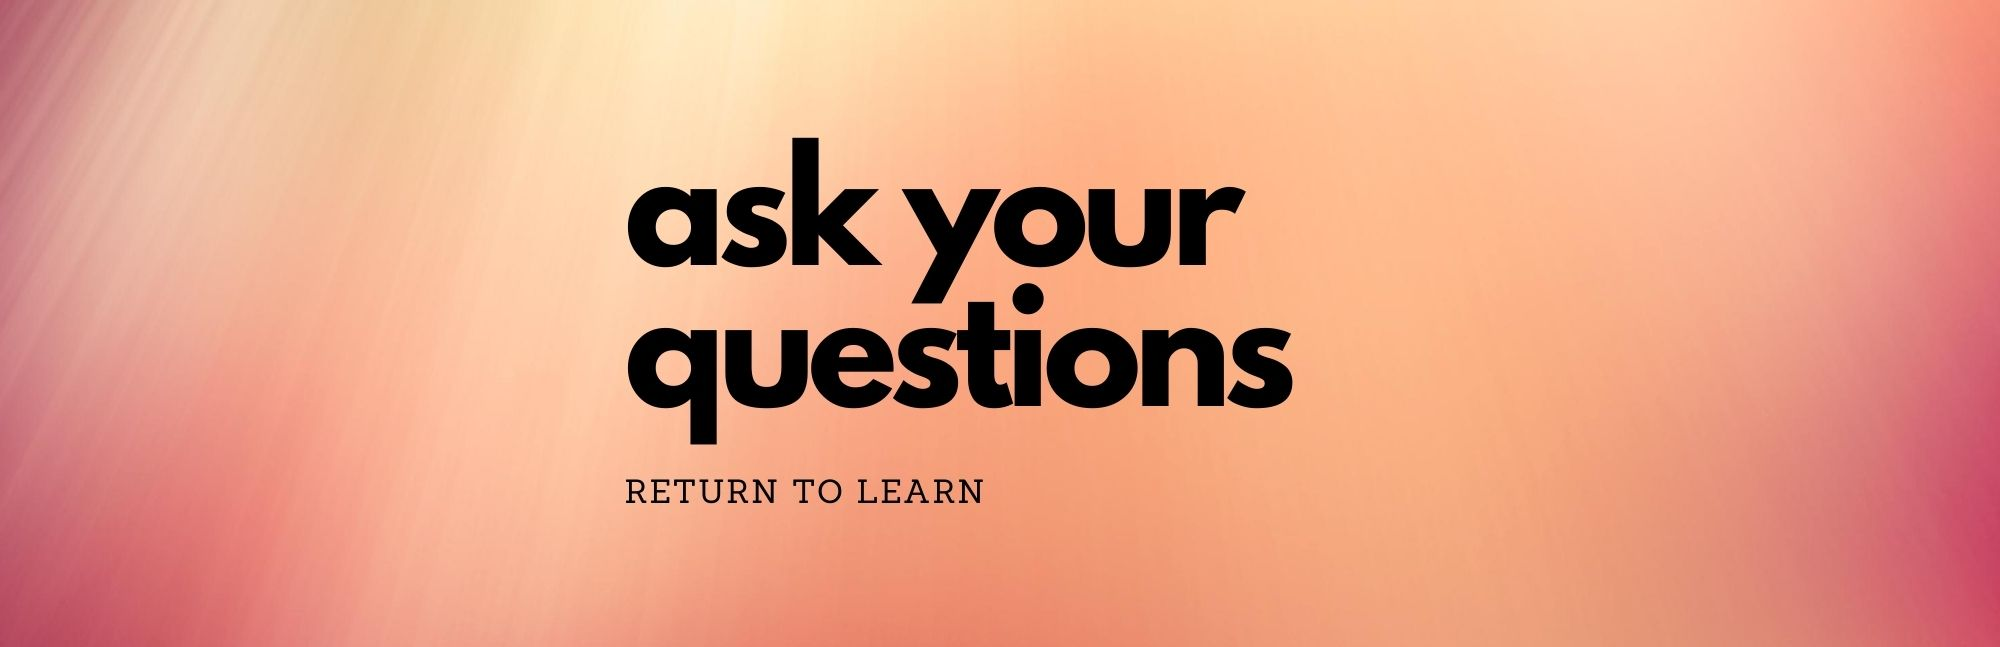 Ask Your Return to Learn Questions